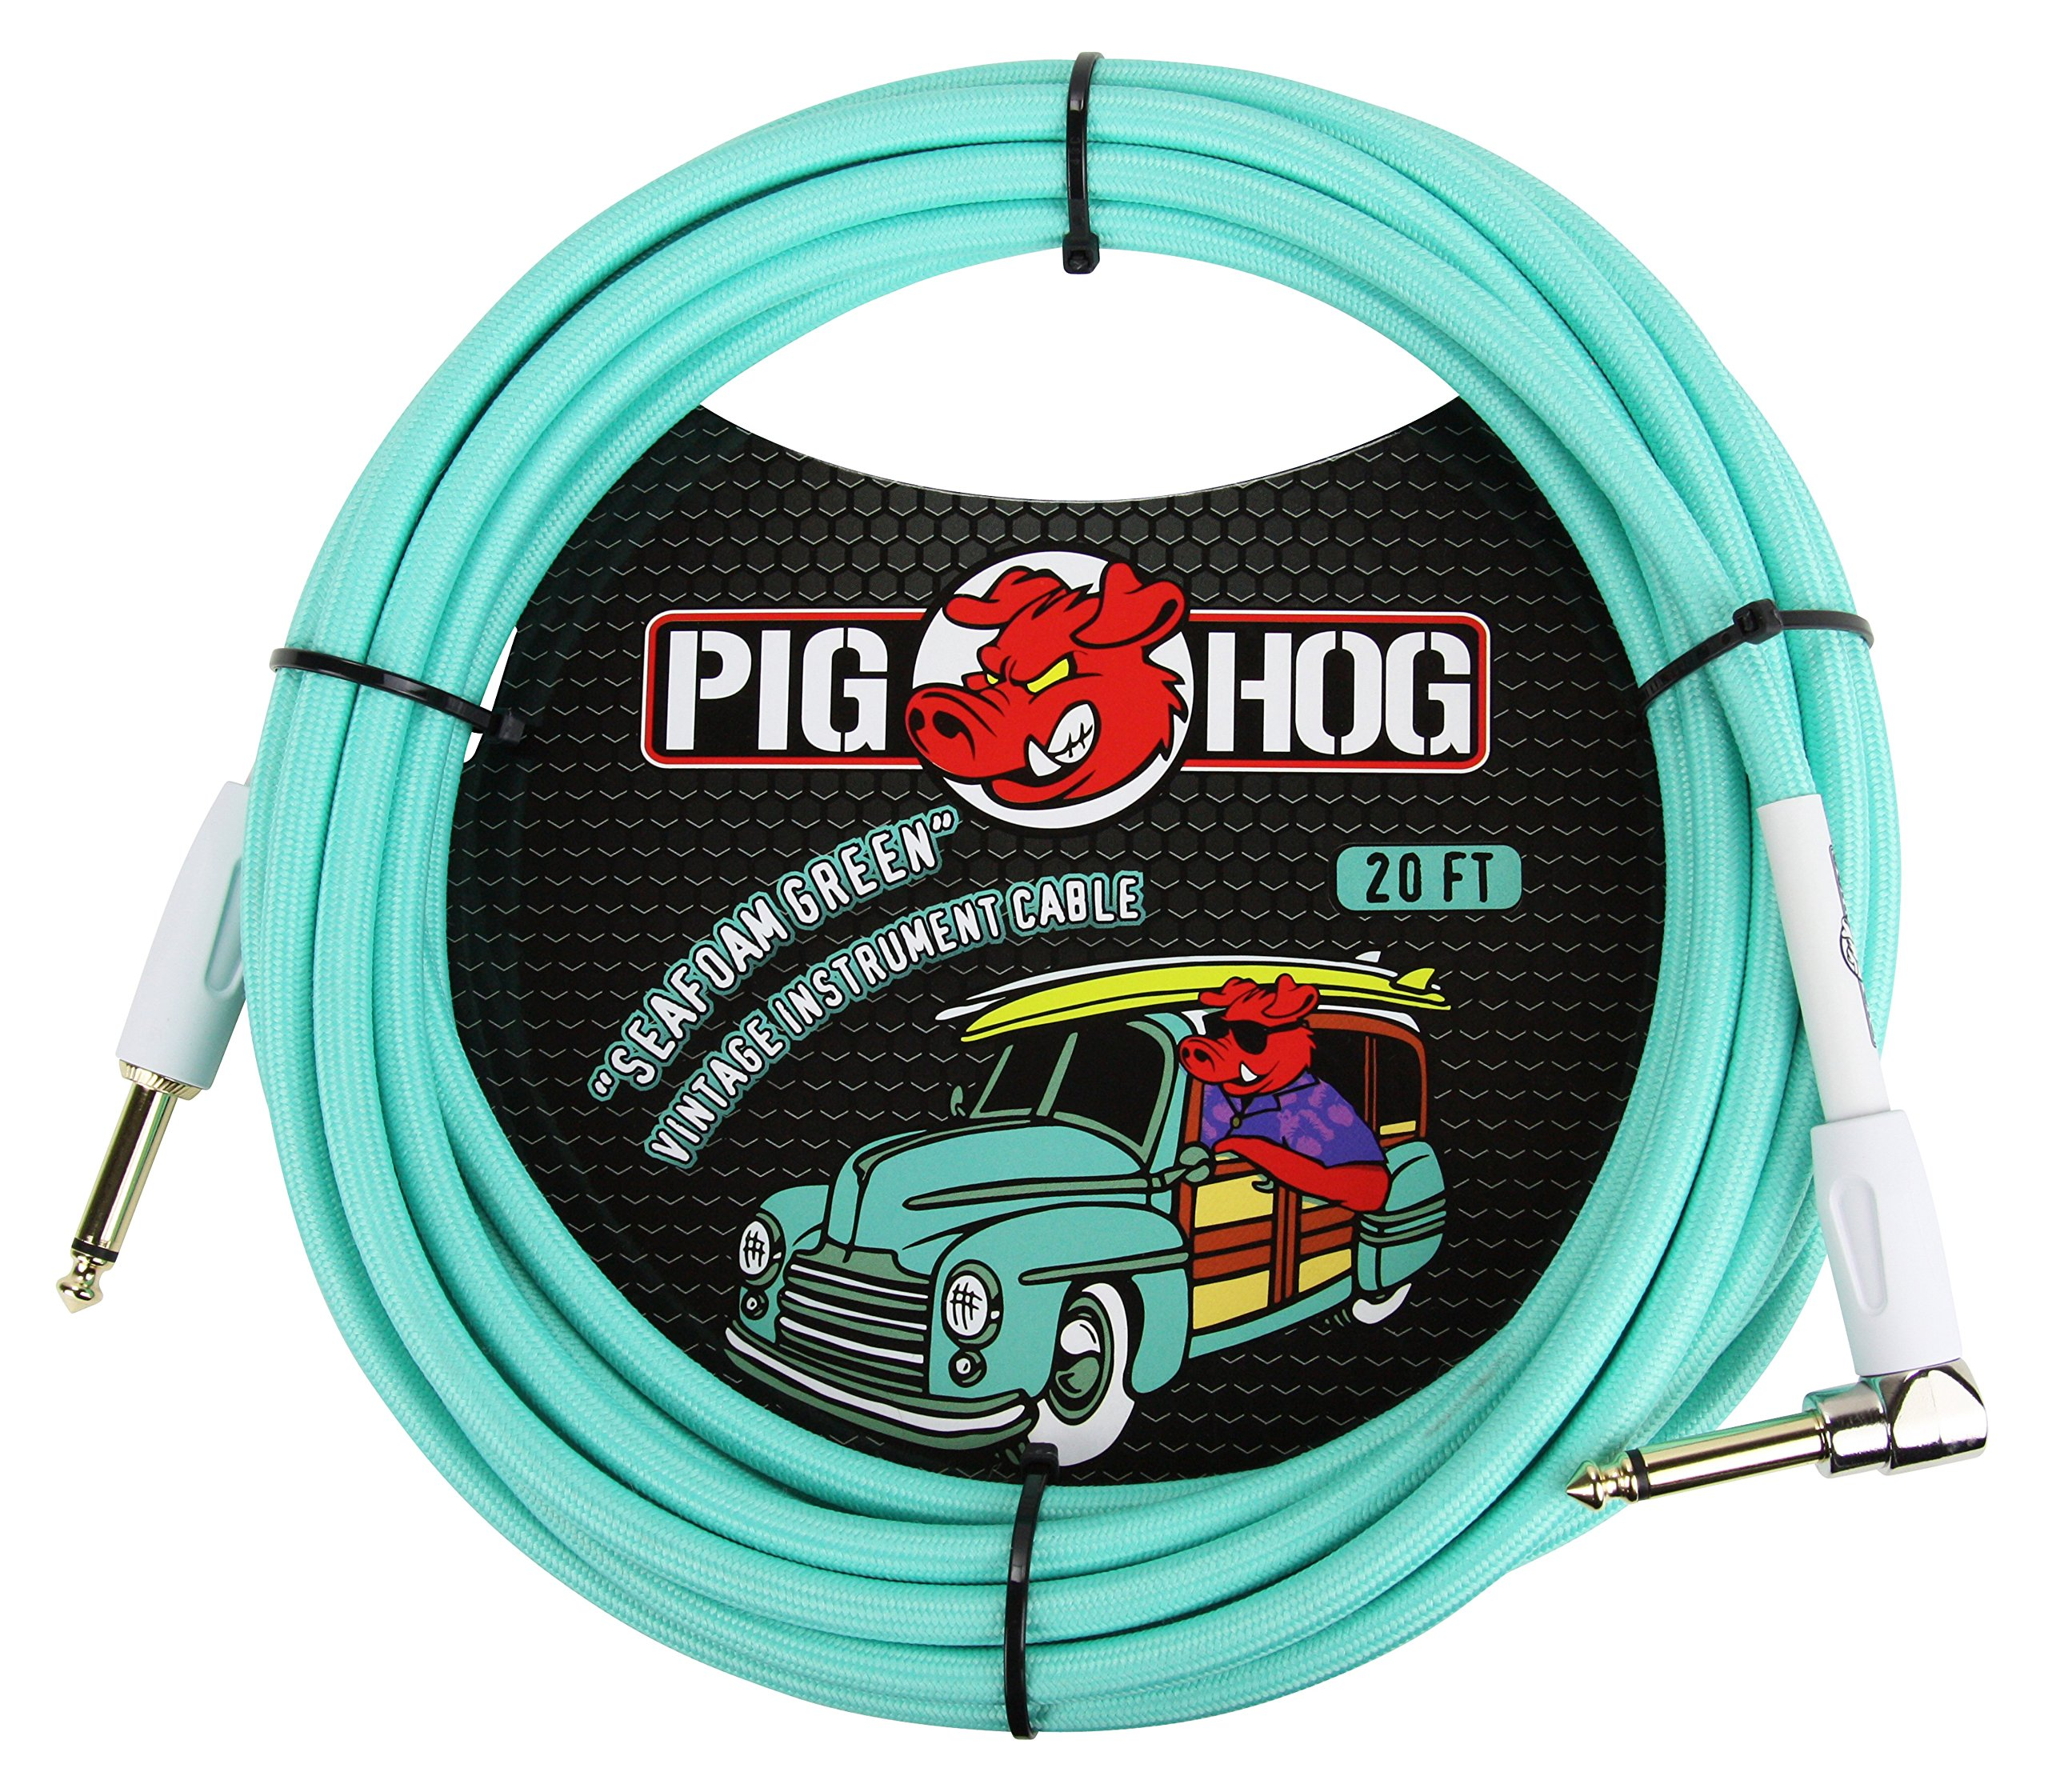 Pig Hog PCH20SGR Right-Angle 1/4'' to 1/4'' Seafoam Green Guitar Instrument Cable, 20 Feet